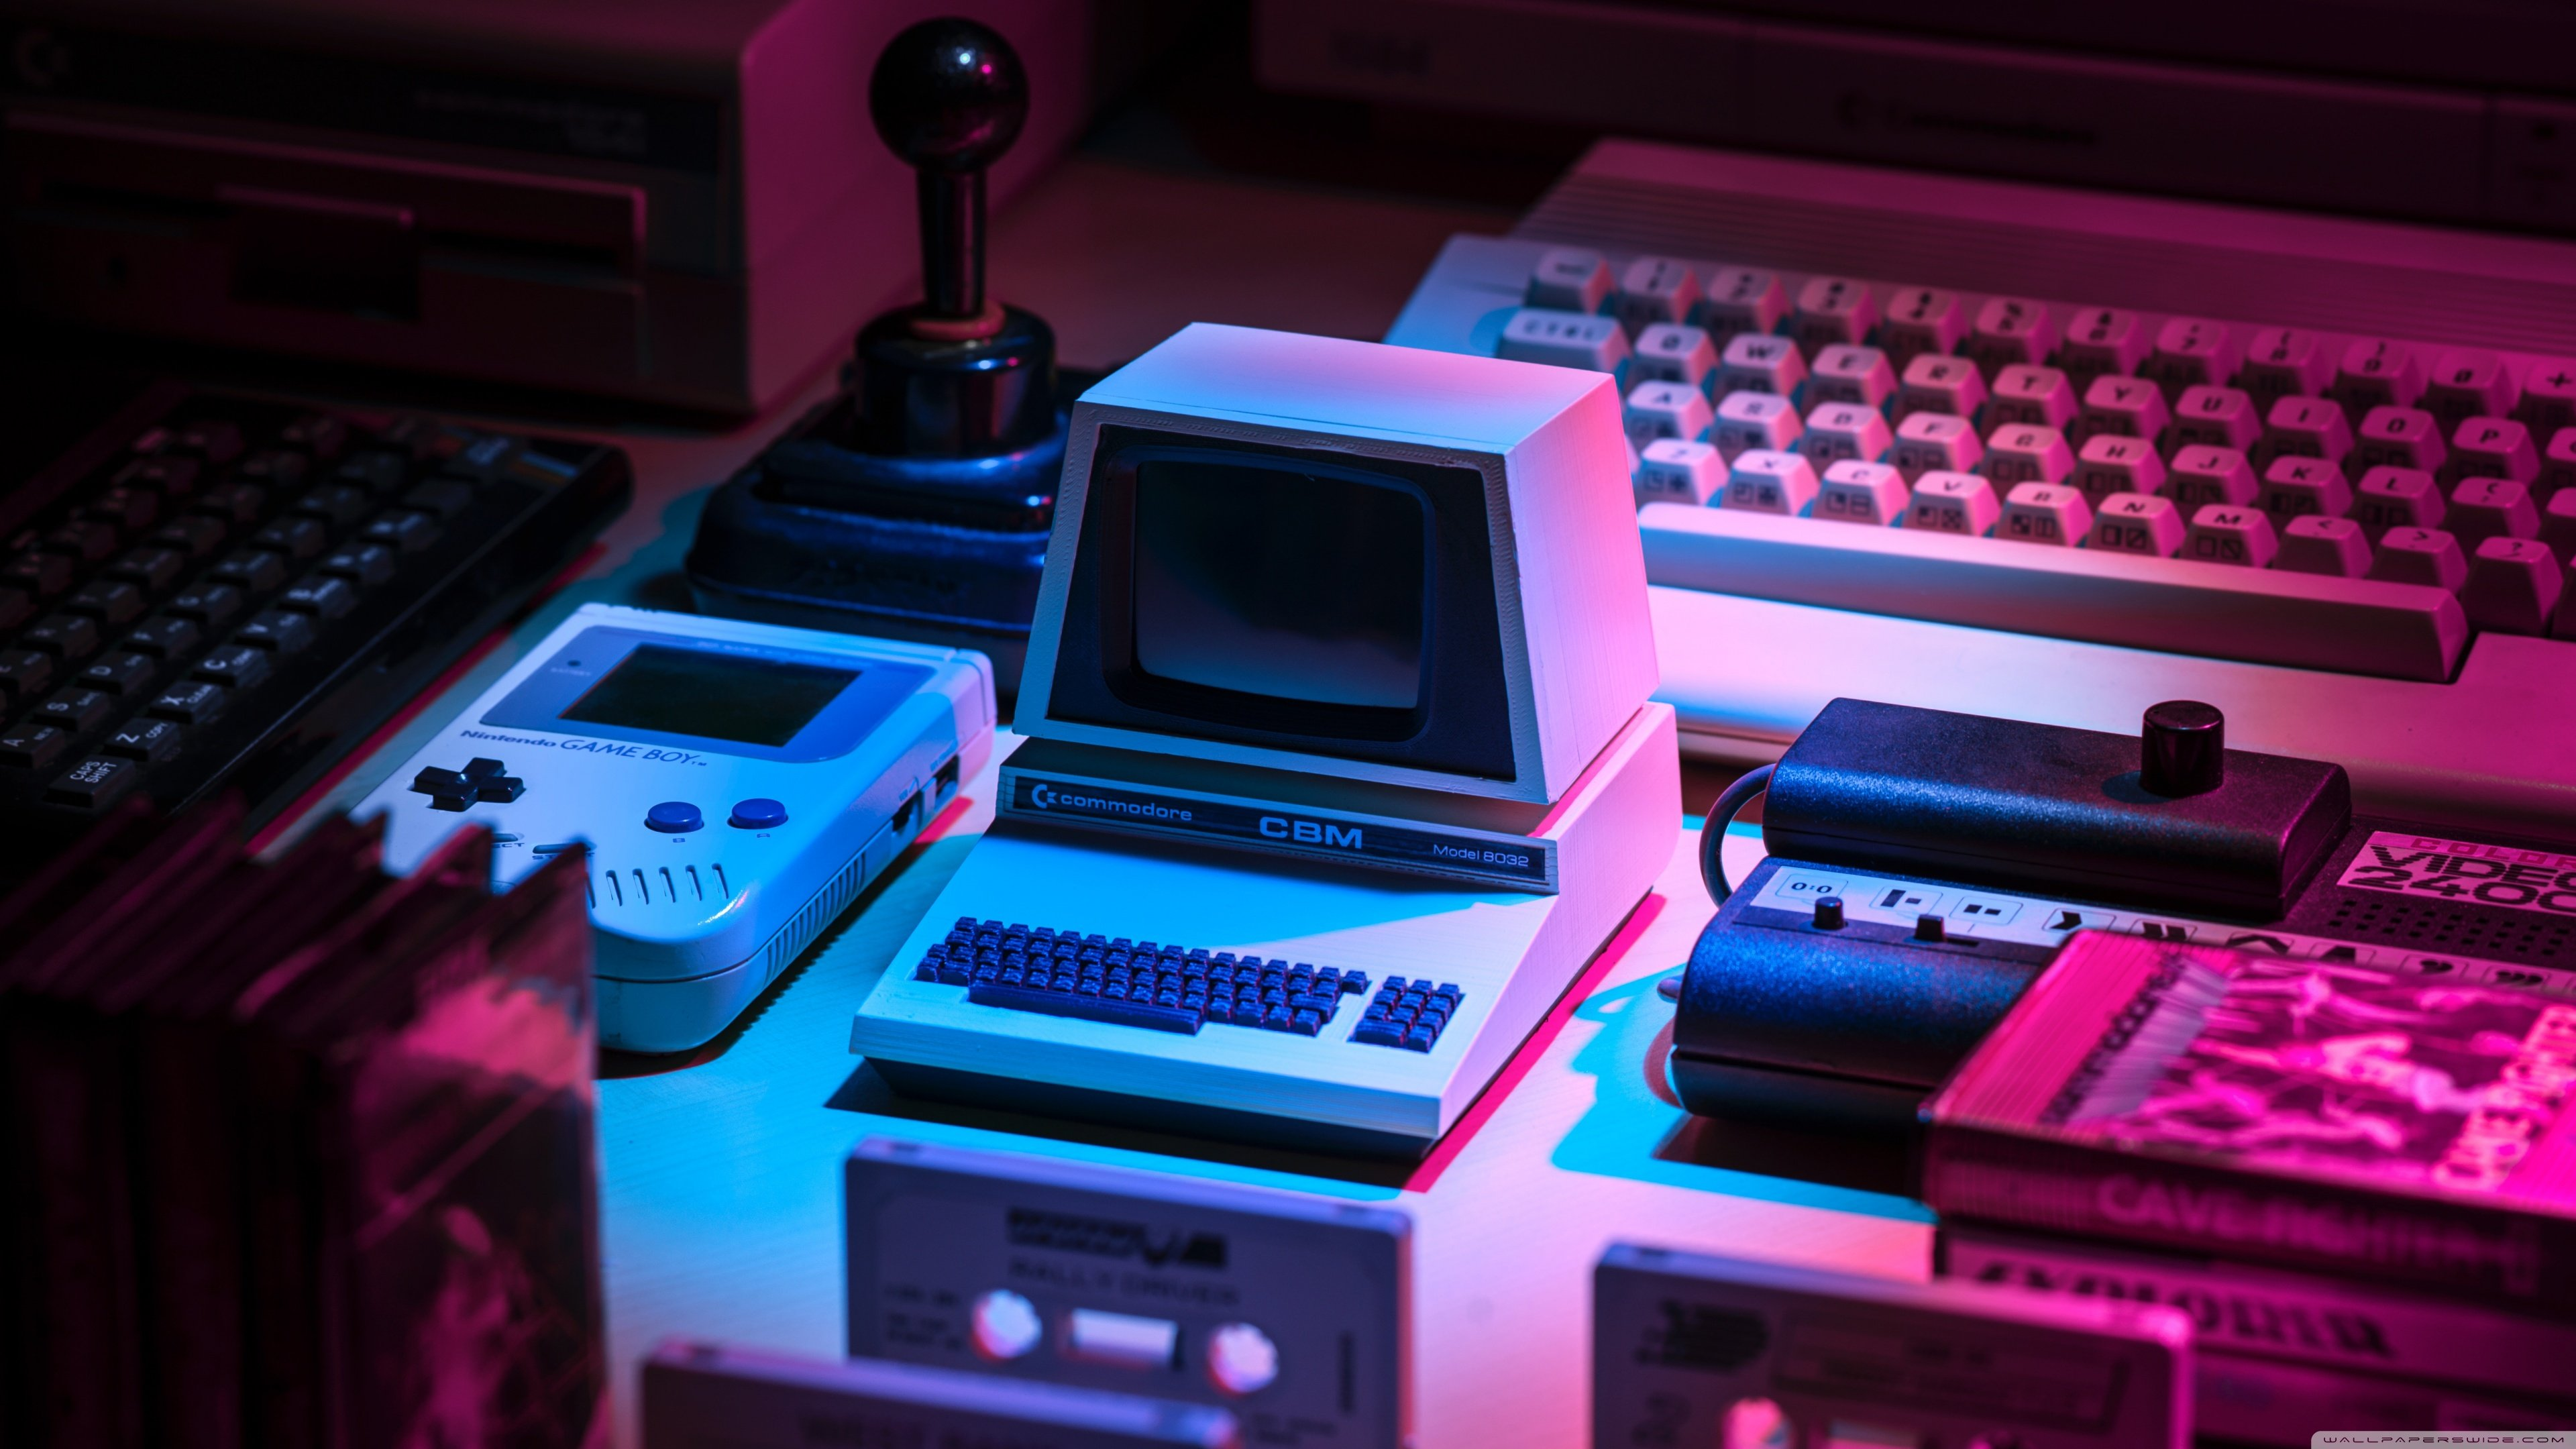 Retro Computer Aesthetic 4K HD Desktop Wallpaper for 4K Ultra 3840x2160